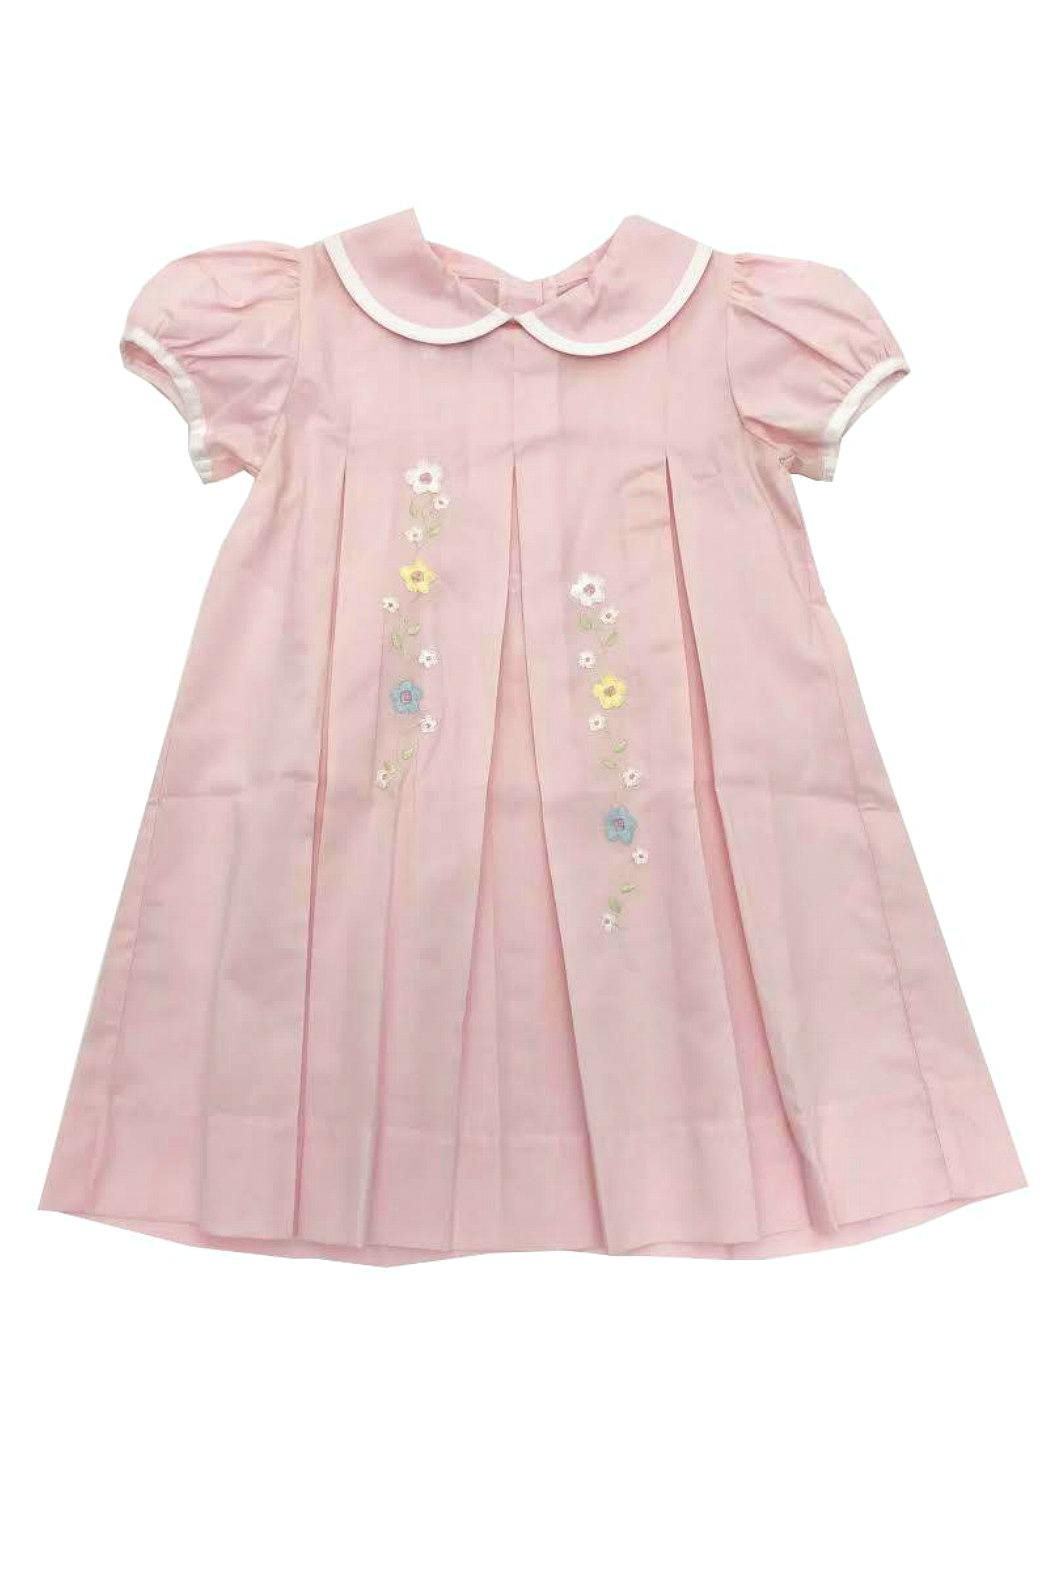 Lullaby Set Girls Pink-Pleated-Floral-Embroidery Dress - Main Image